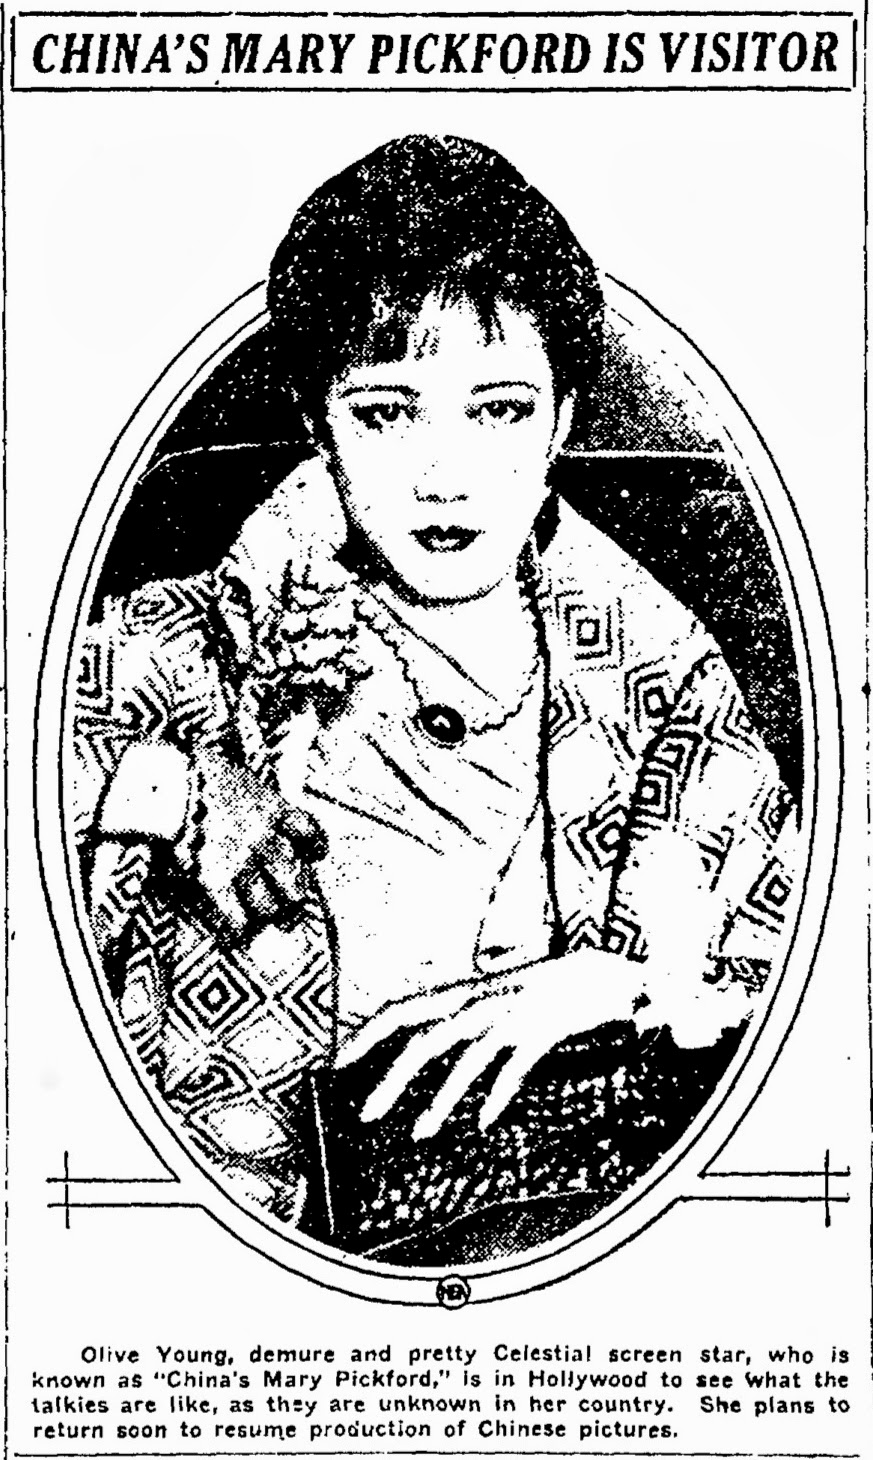 Olive Young (actress)